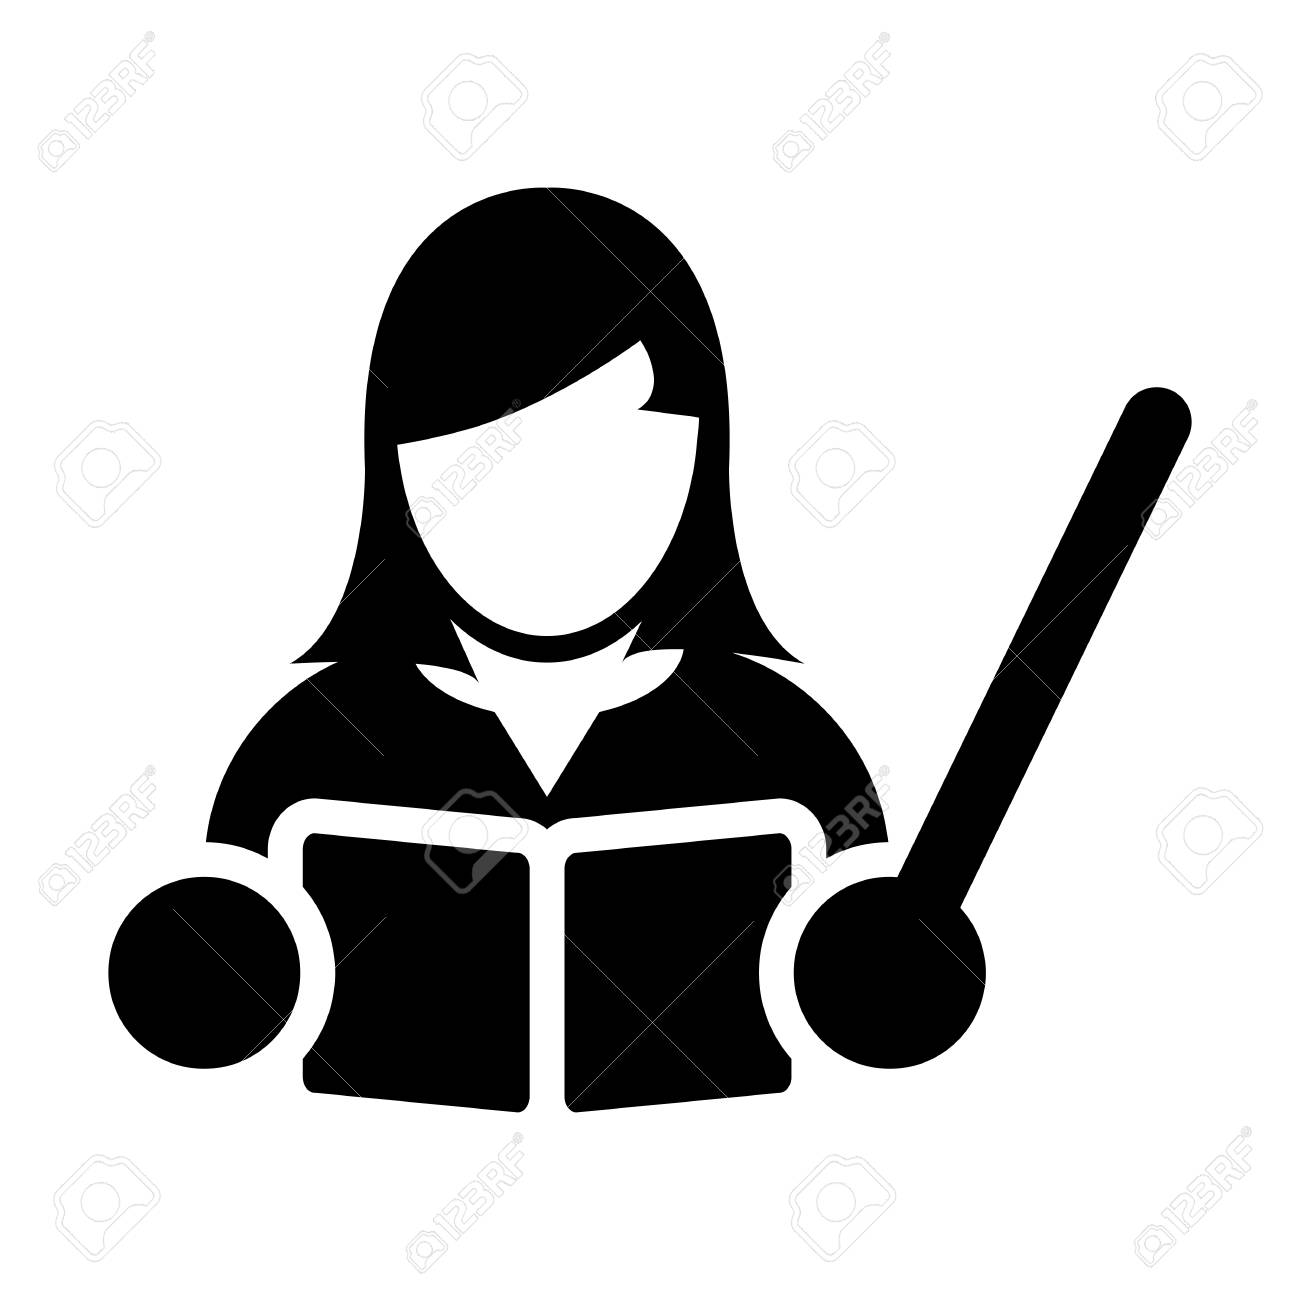 Teacher Icon Vector Female Person Profile Avatar With A Book Royalty Free Cliparts Vectors And Stock Illustration Image 95917221